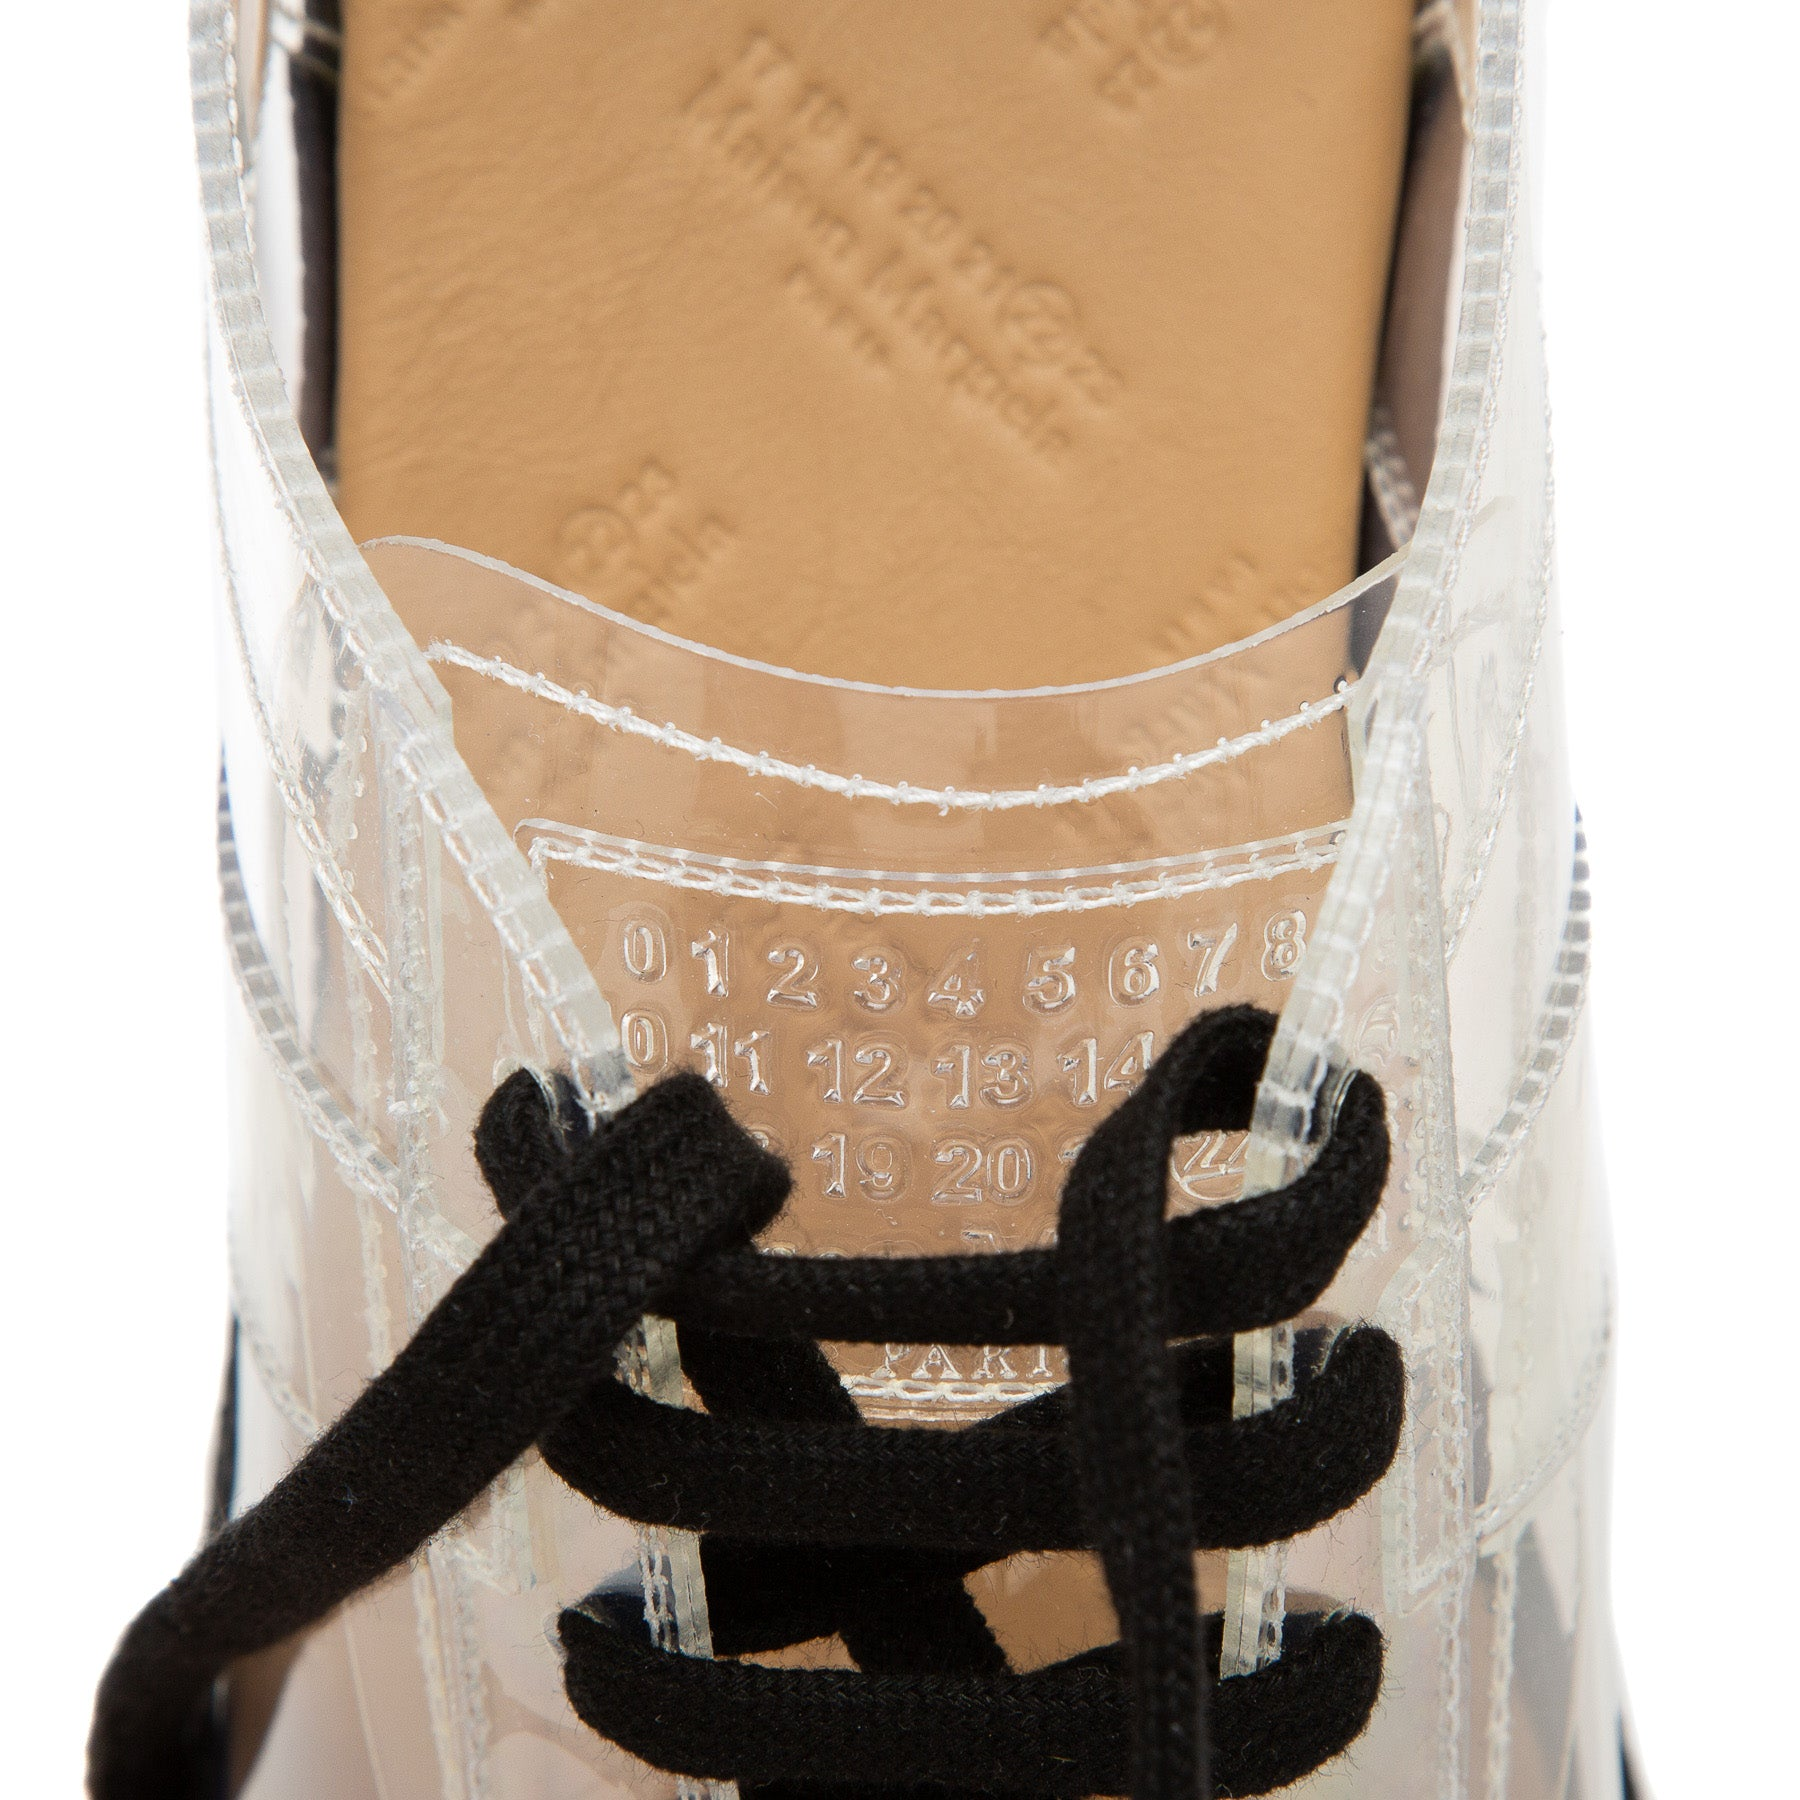 MAISON MARGIELA | CLEAR REPLICA SNEAKERS